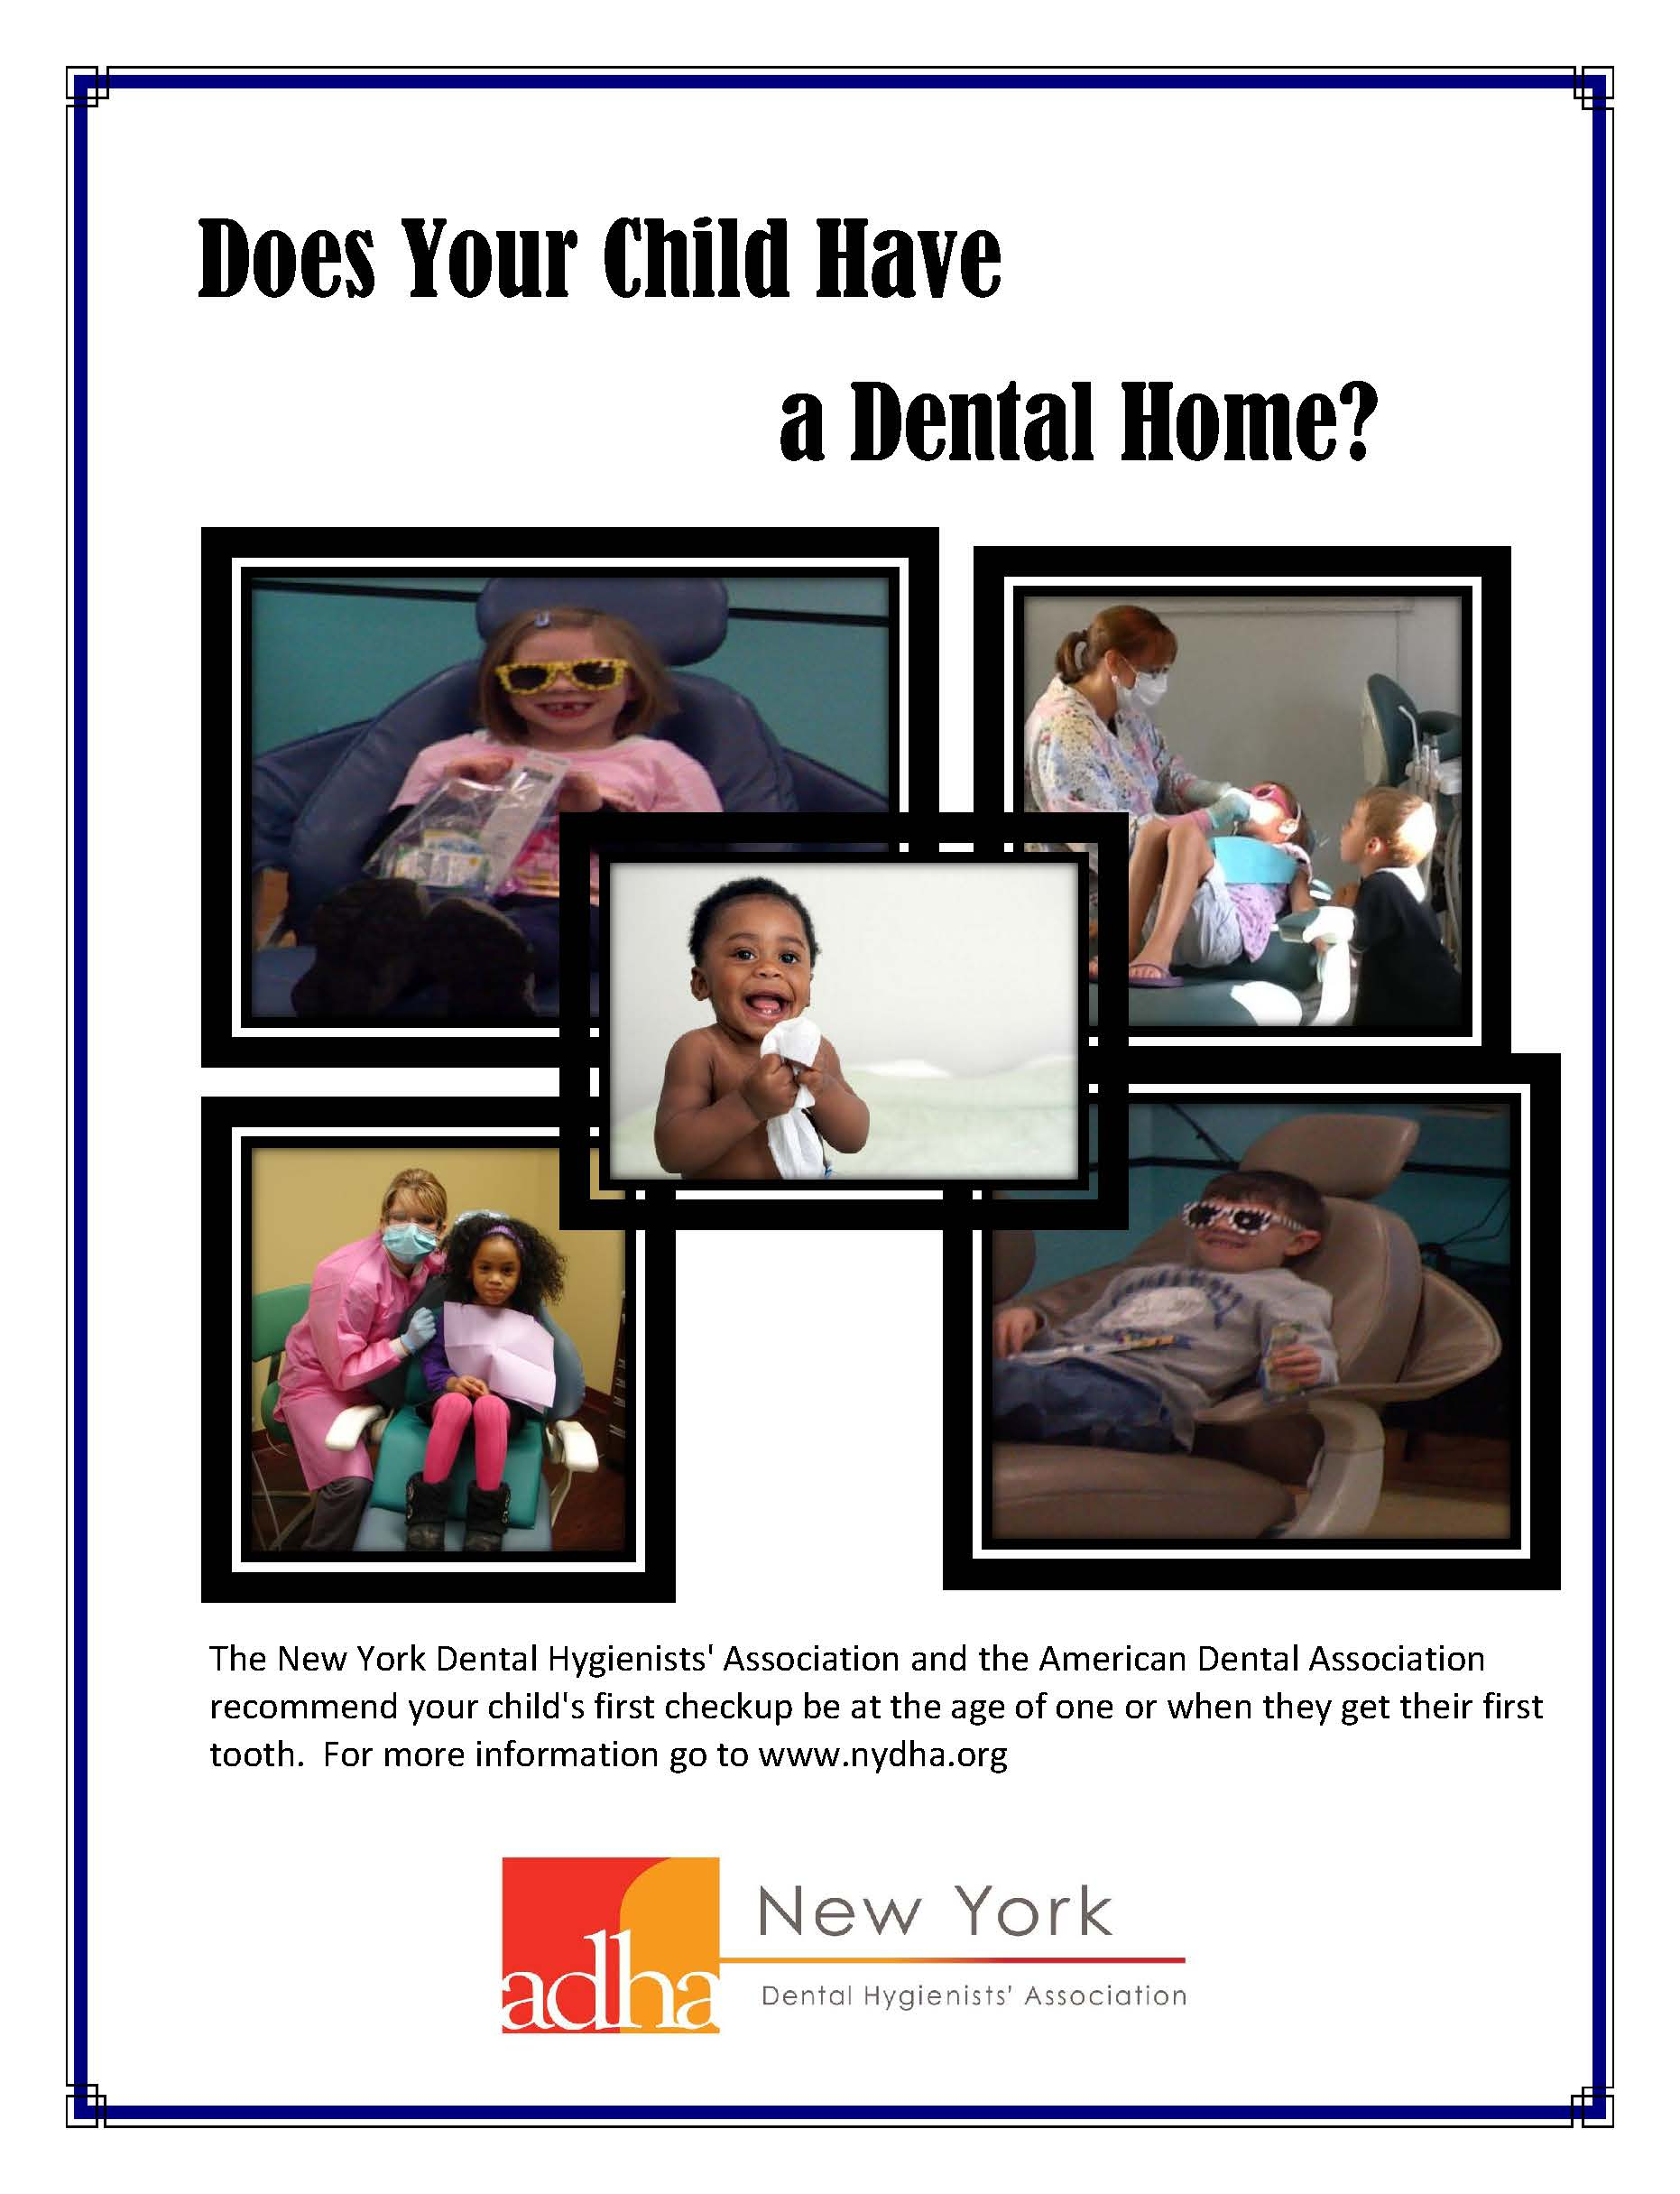 Child's Dental Home